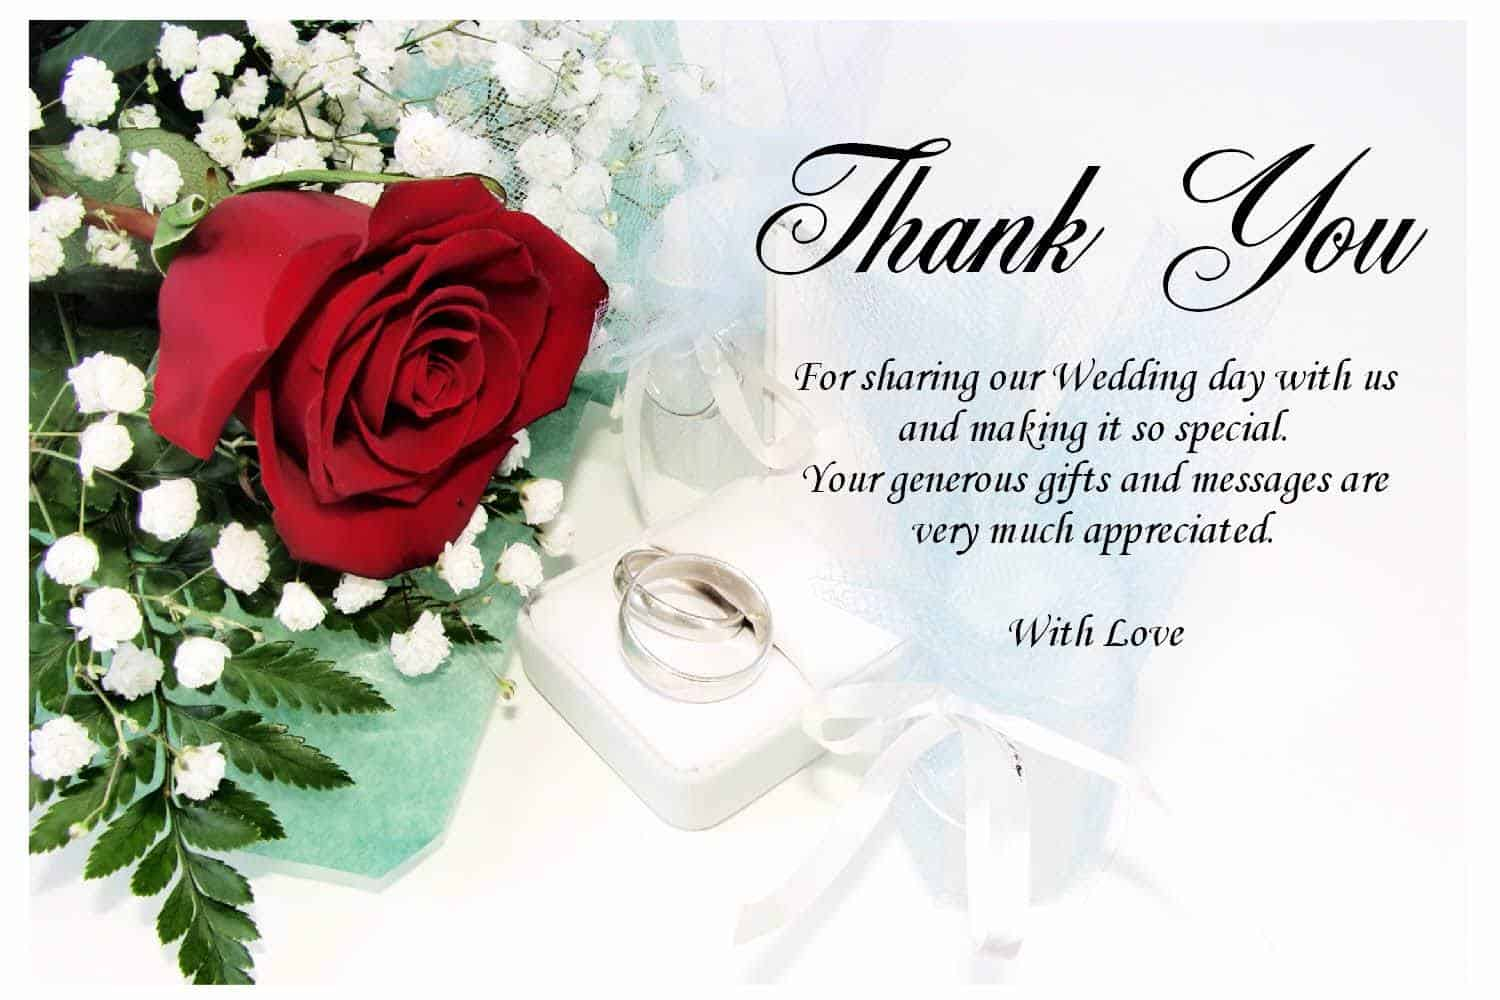 Thank You For Your Wedding Gift Cards : Wedding Thank You Gifts And Messages